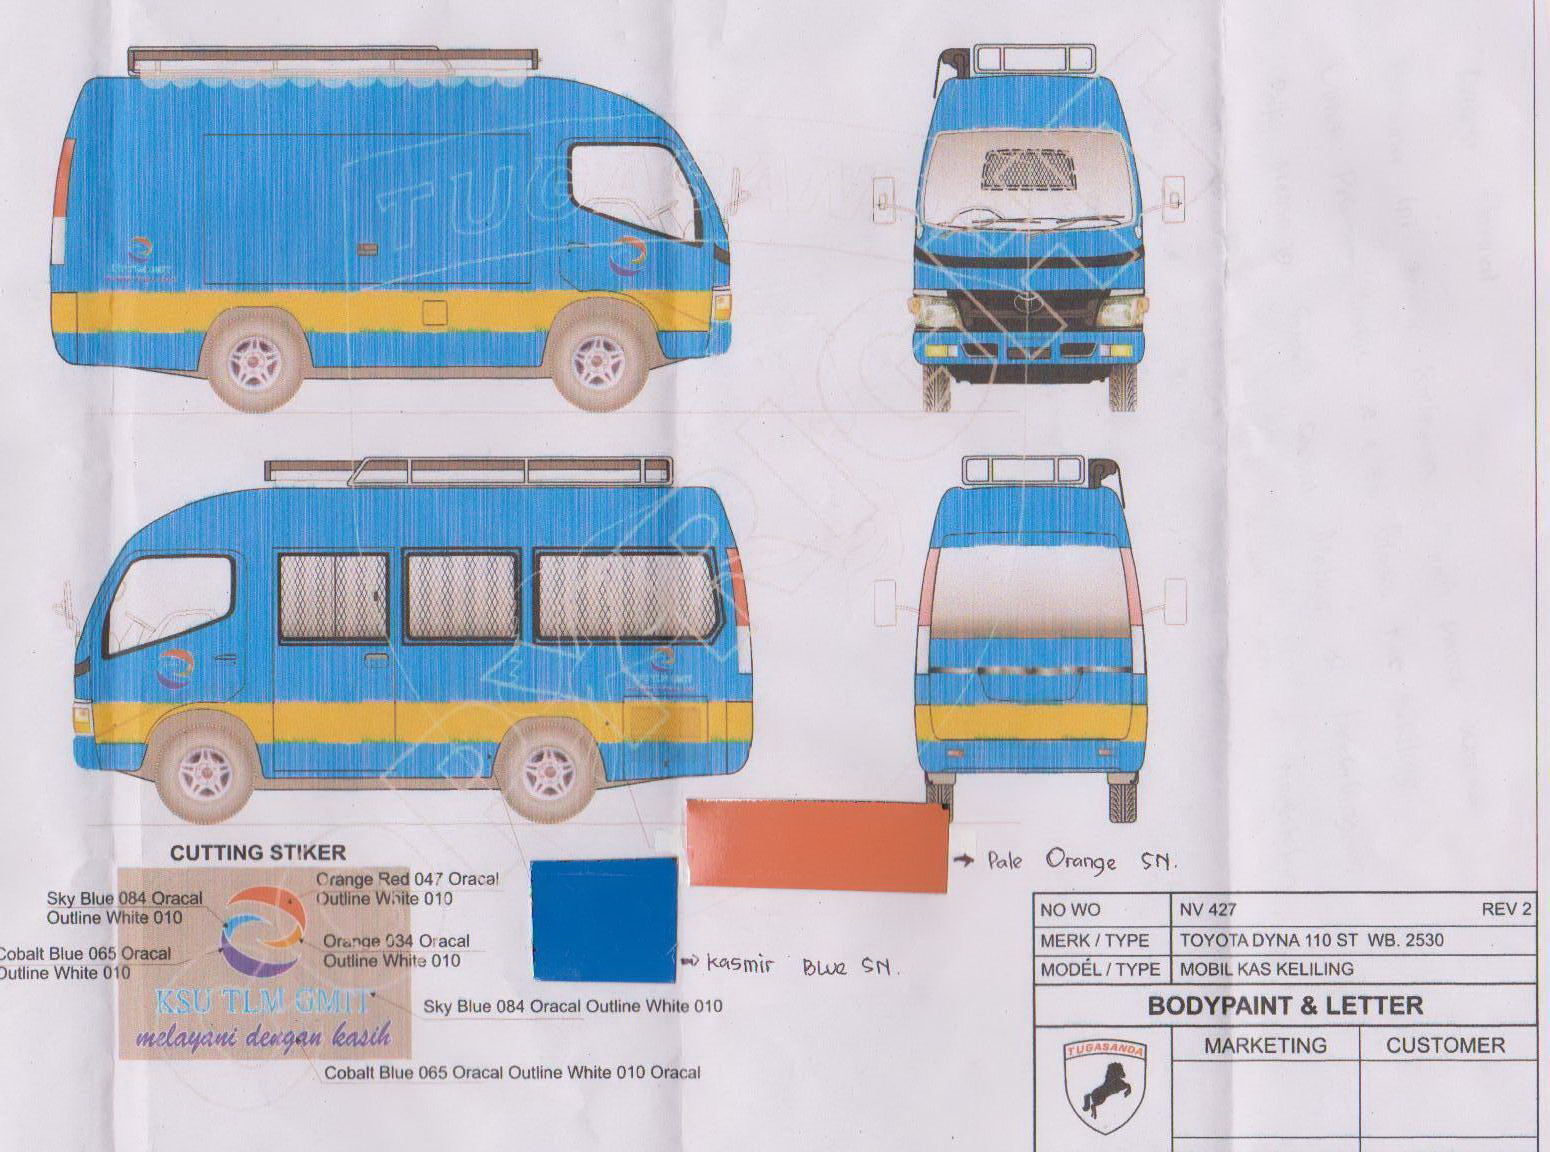 TLM Mobile Van Sketch